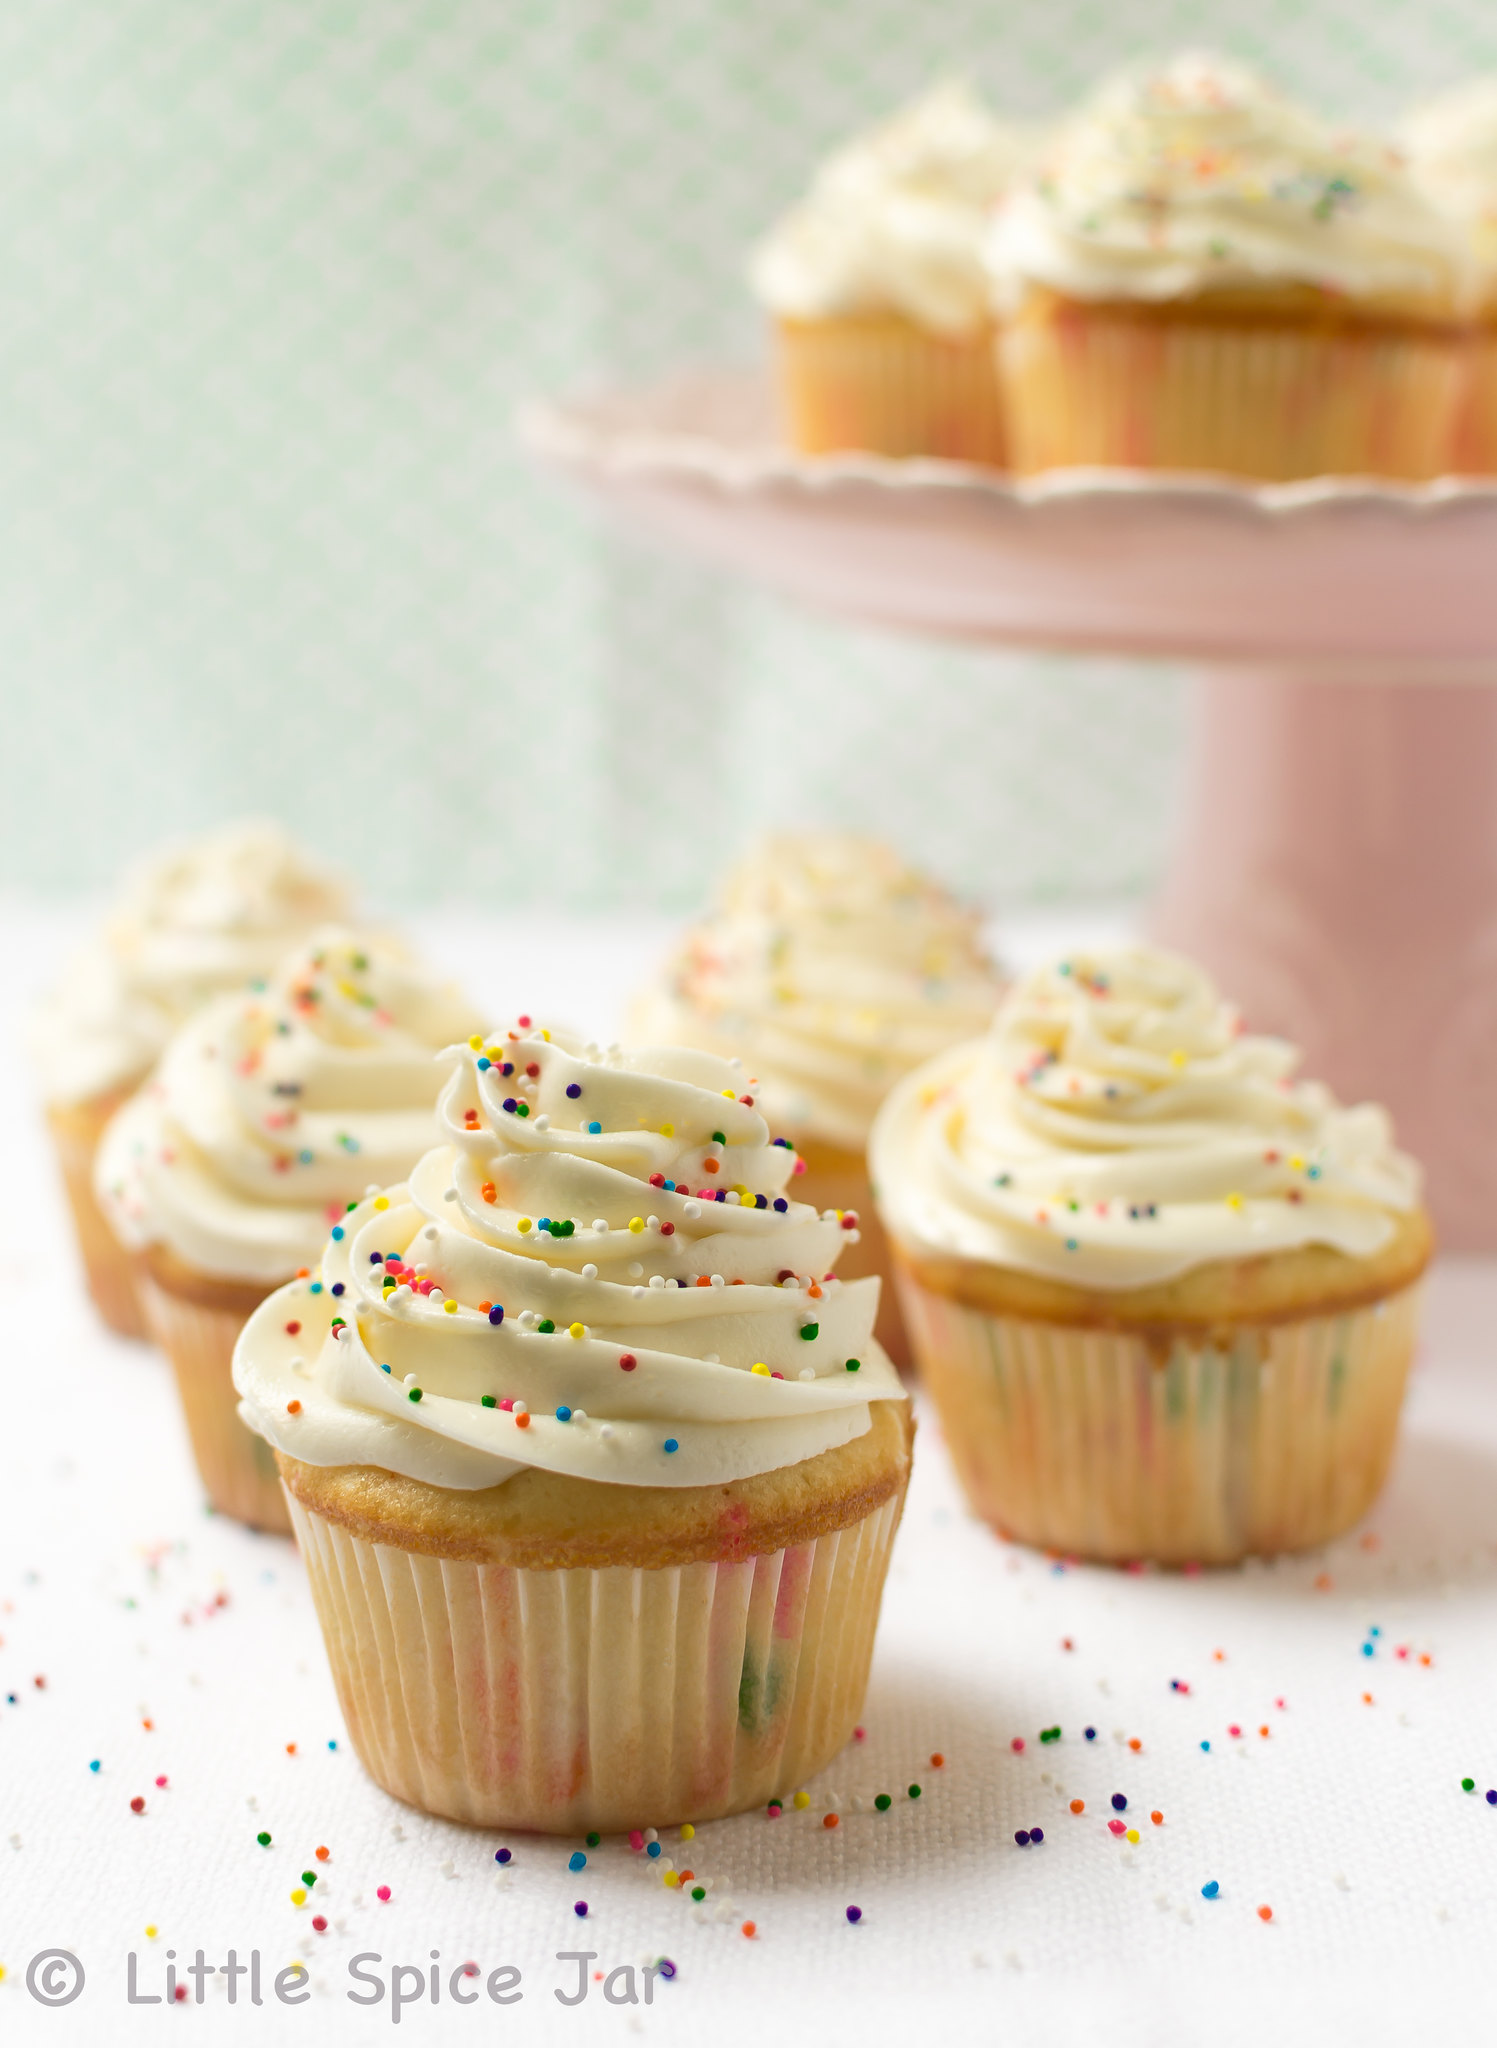 prepared funfetti cupcakes on white linen with cake stand holding more cupcakes in the back